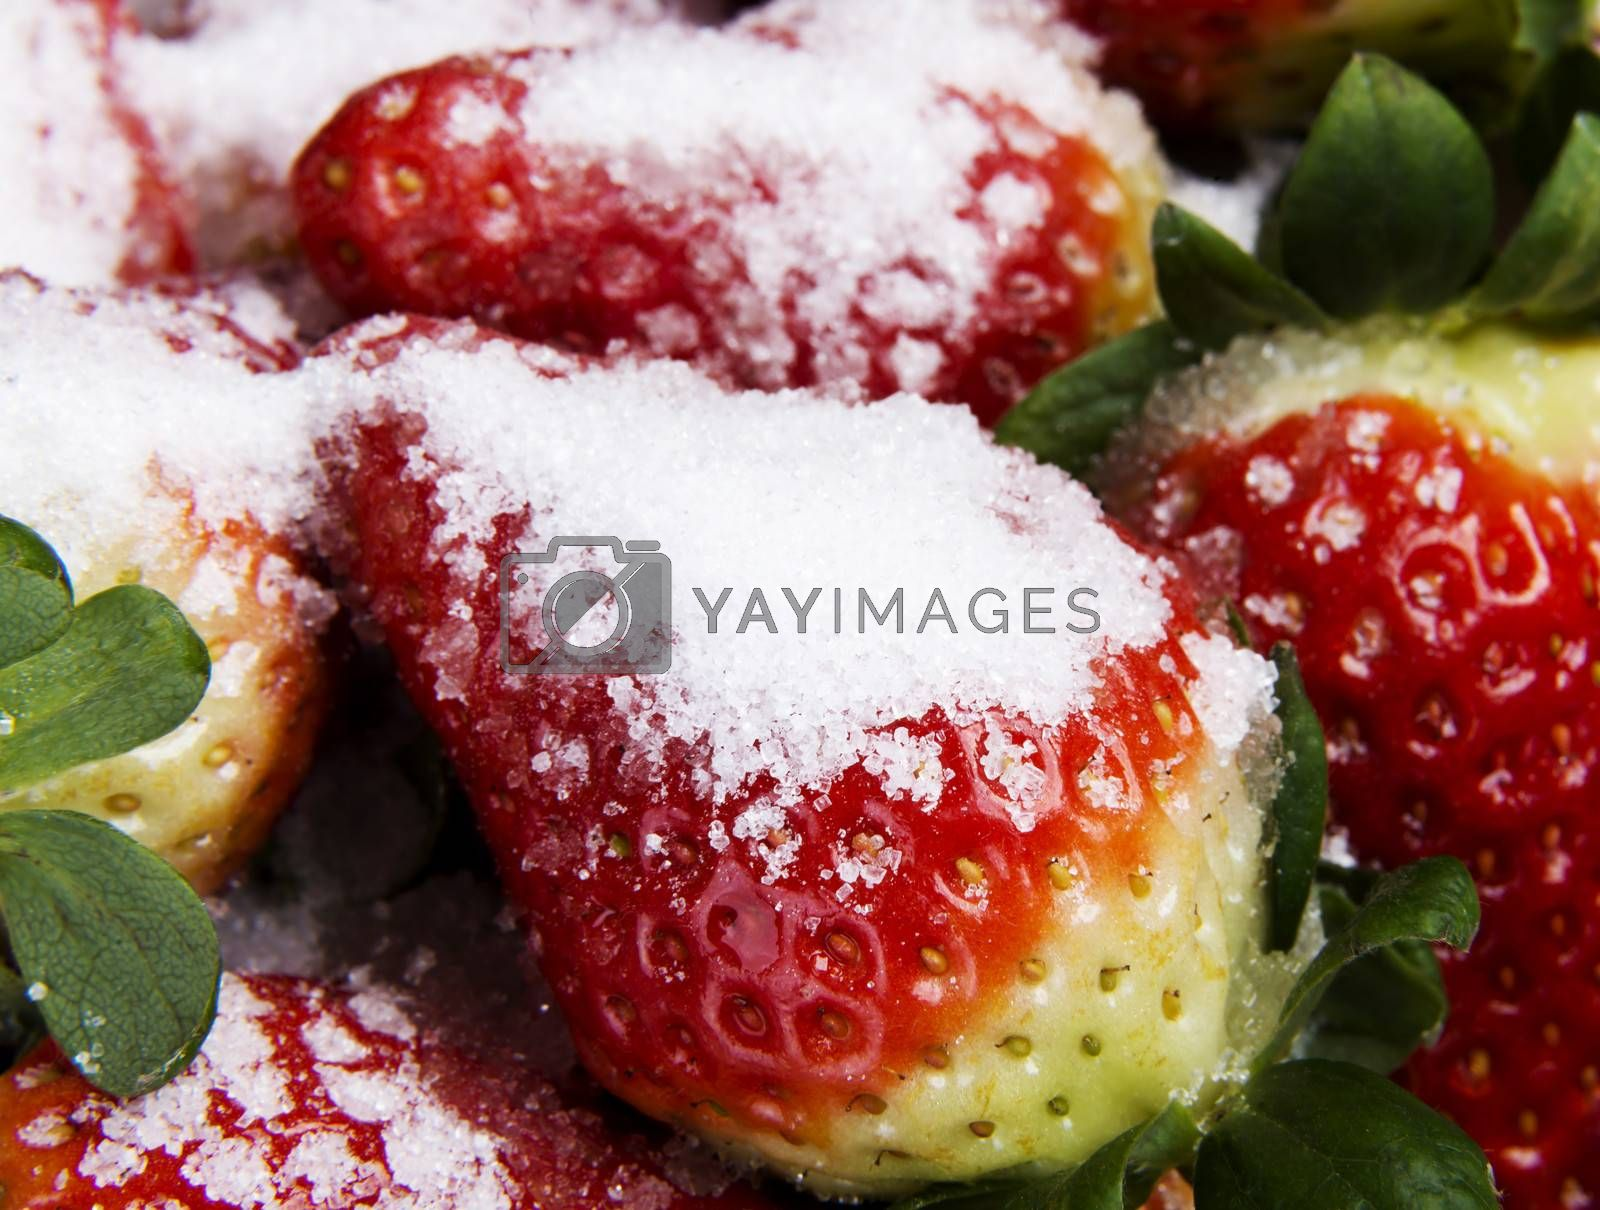 Royalty free image of Close up on fresh red strawberries. by BDS